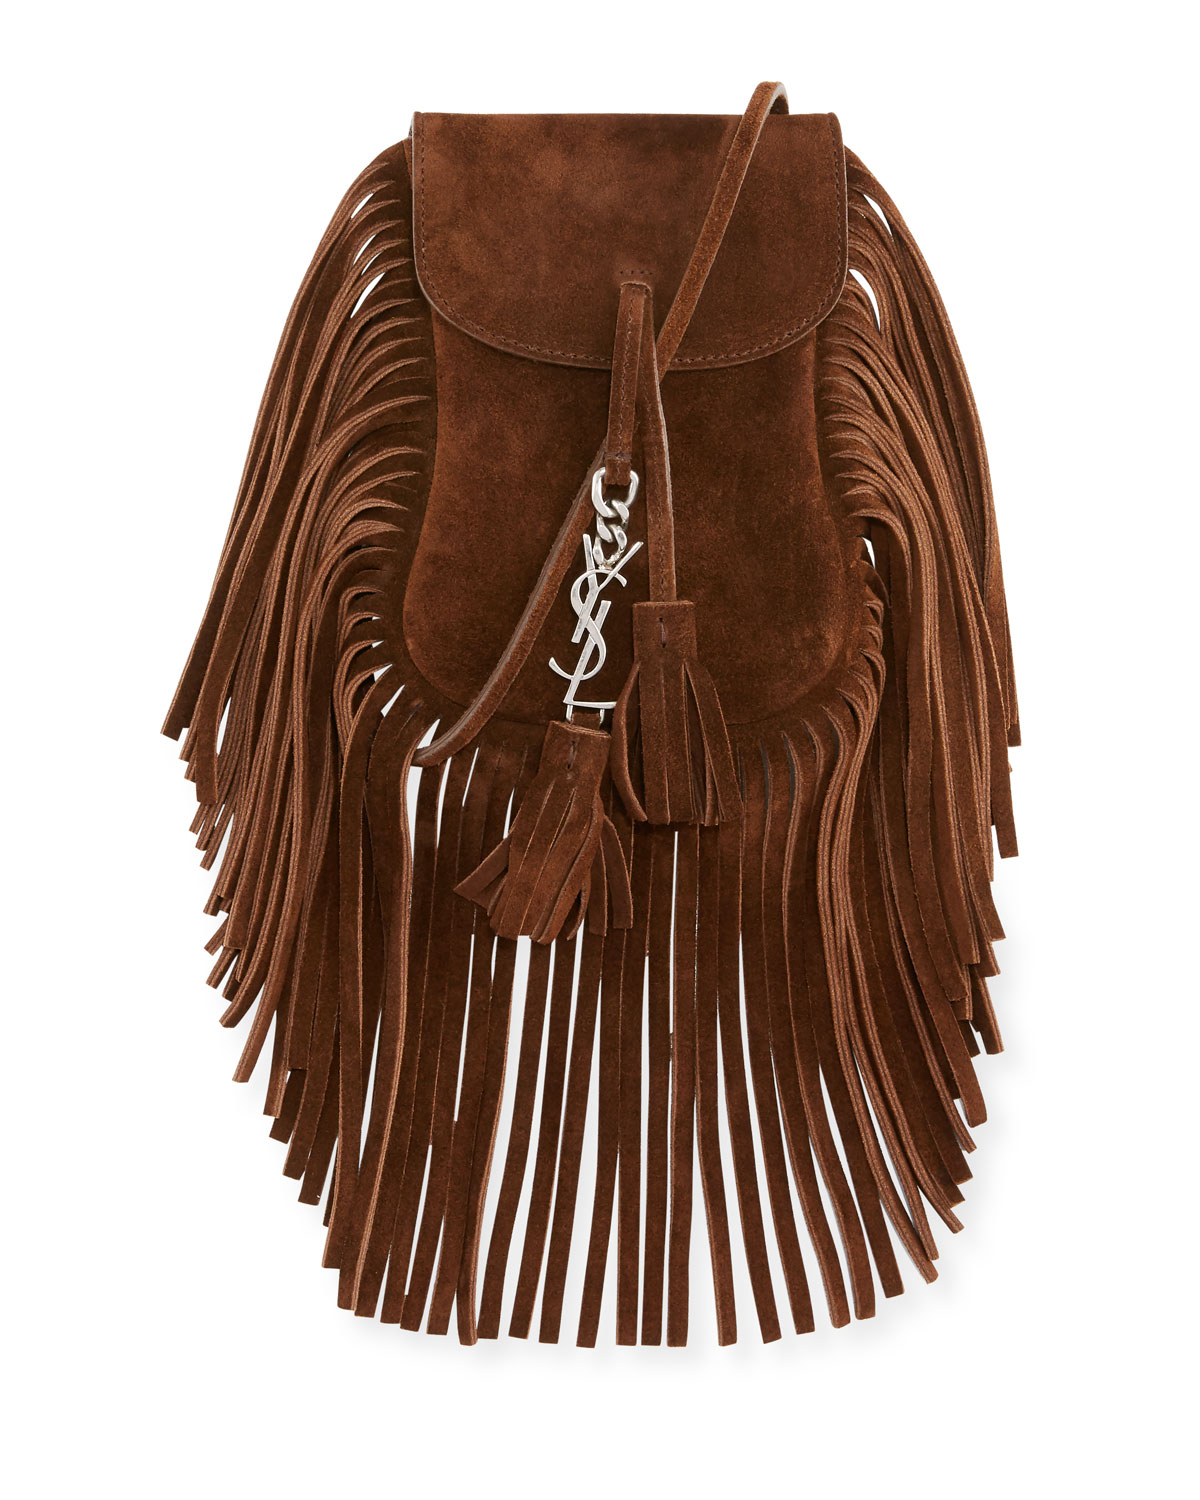 Saint Laurent Anita Toy Flat Suede Fringe Crossbody Bag